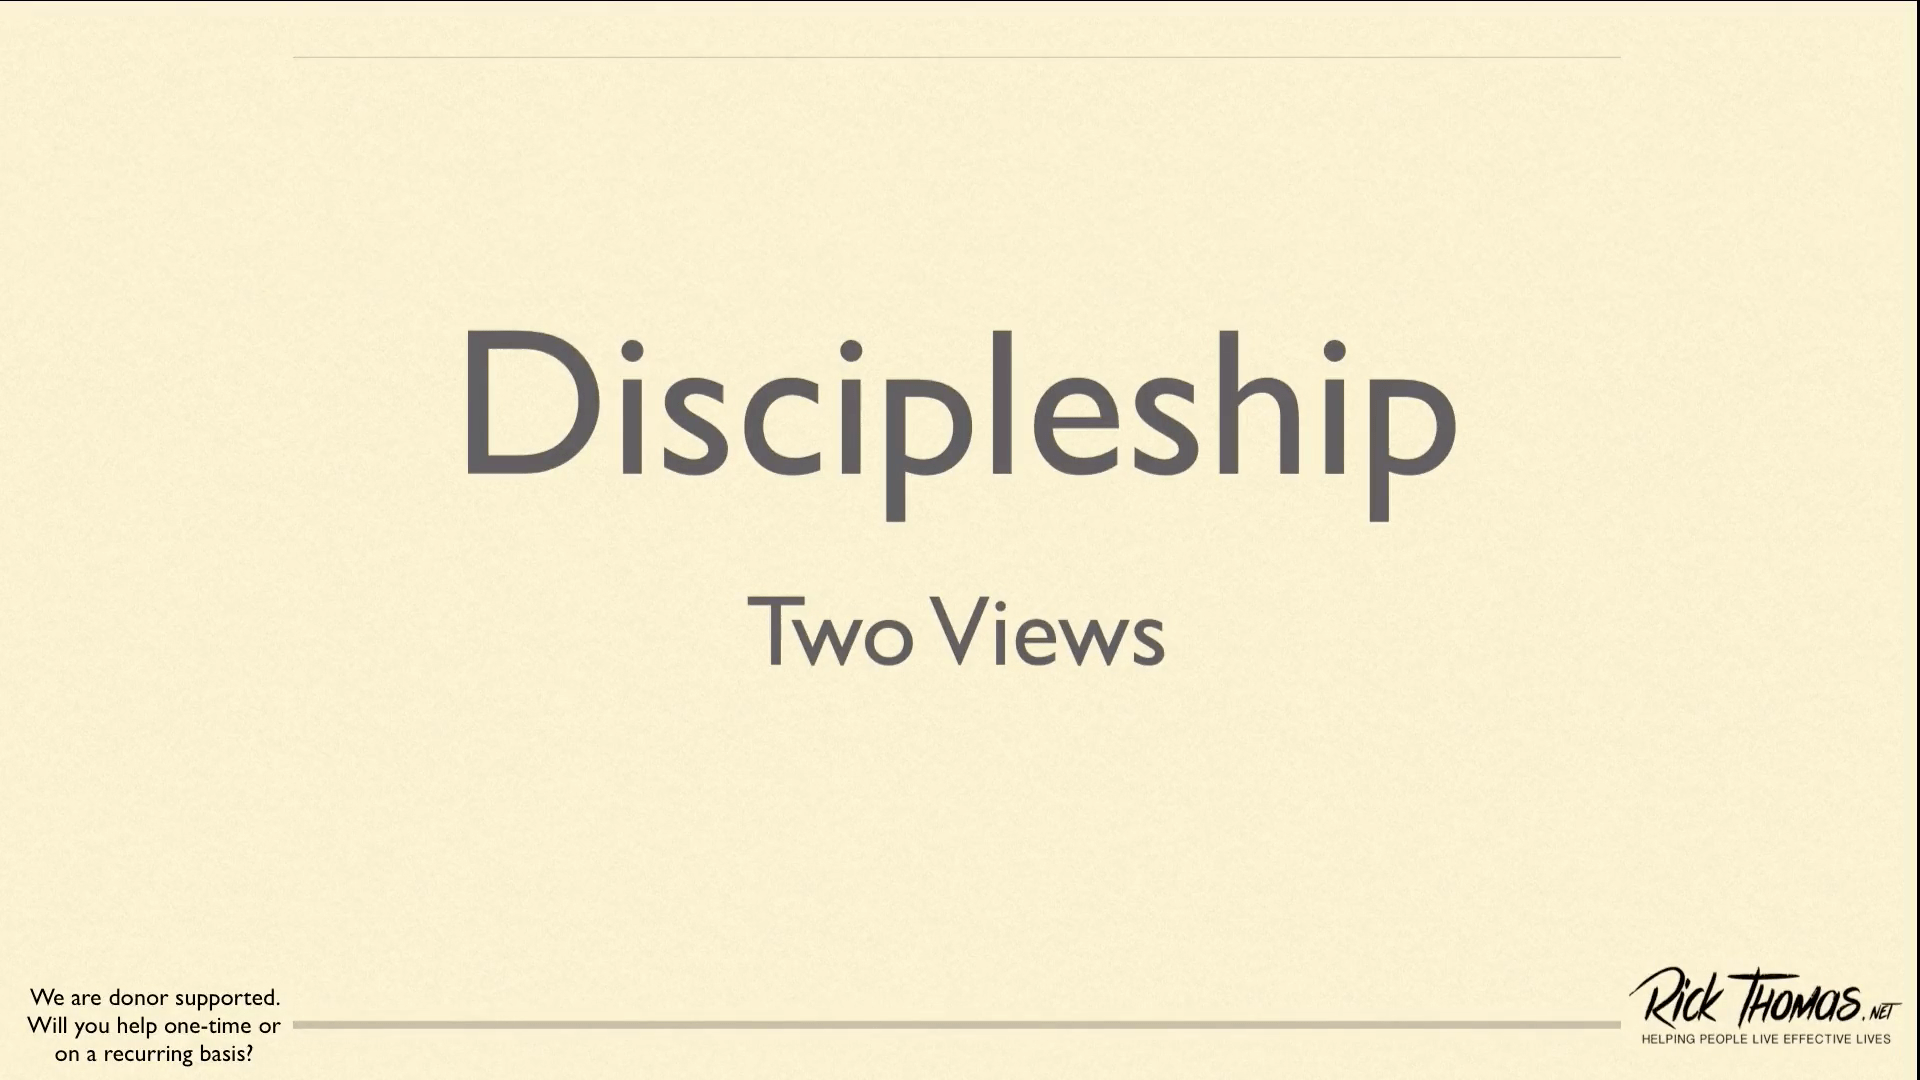 Two Views of Discipleship